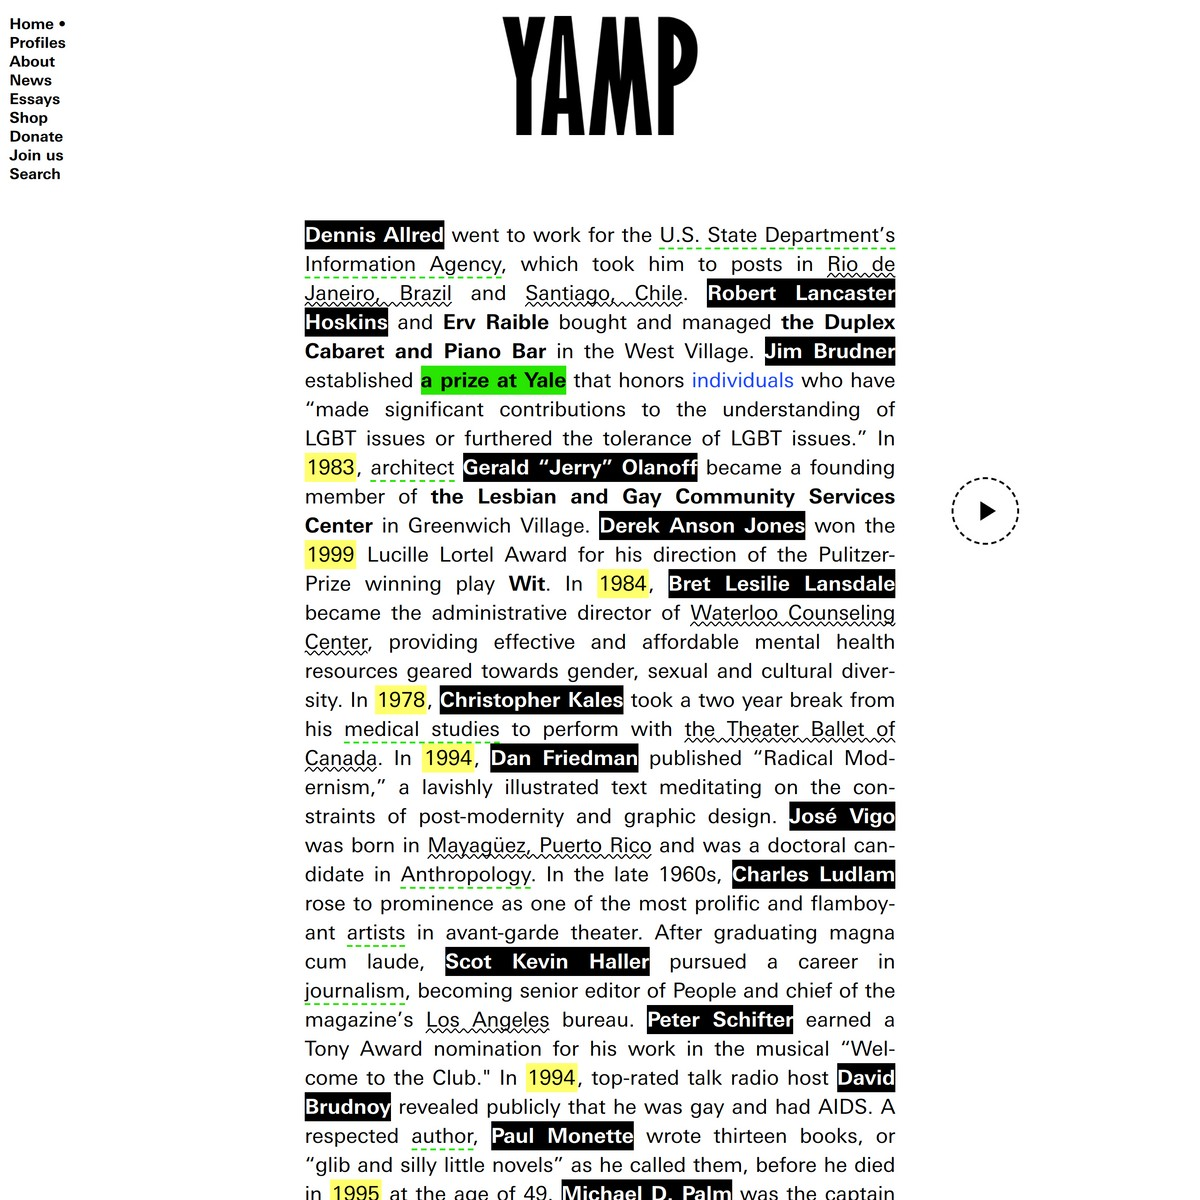 The Yale AIDS Memorial Project (YAMP) is an alumni-led initiative to honor and document the lives of hundreds of men and women from the University who perished during the AIDS epidemic.